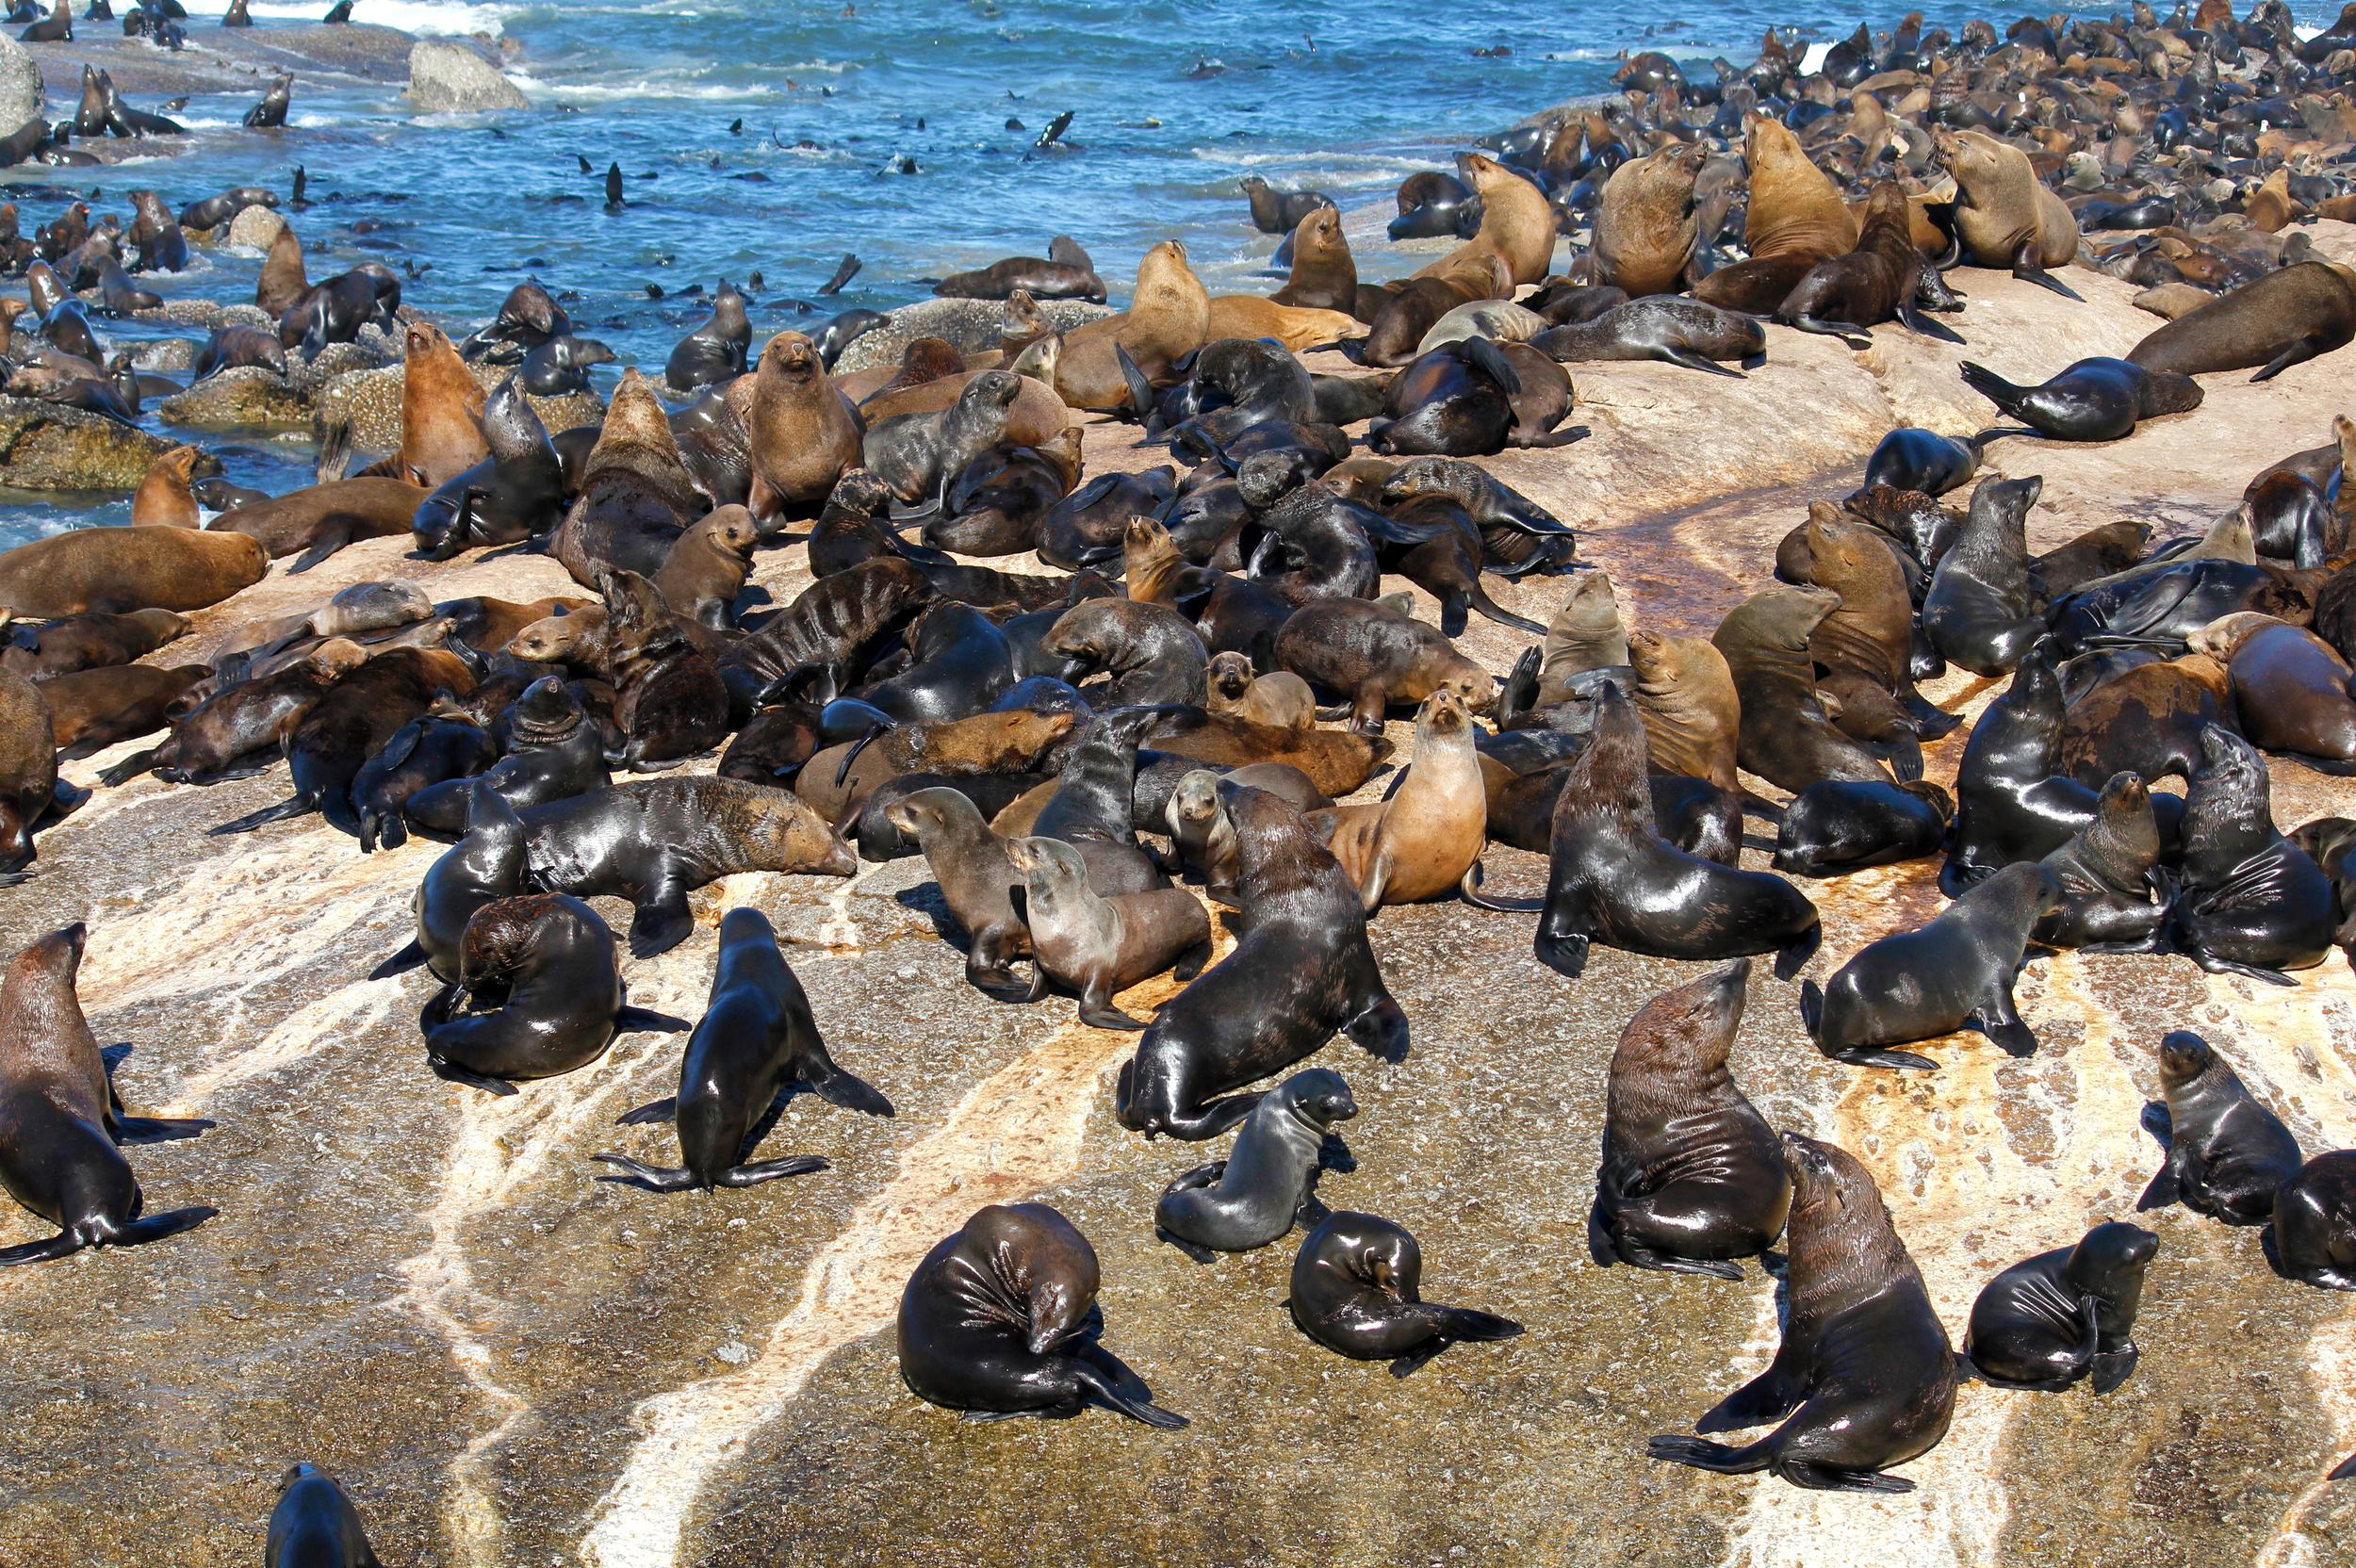 """<p>Located just a few kilometres off the northern beaches of False Bay, near <a href=""""http://aol.co.uk/travel/guides/cape-town/"""">Cape Town</a>, Seal Island is home to approximately 65,000 Cape Fur Seals. The island is a popular feeding ground for the great white shark and lucky visitors may see the fish breaching in pursuit of its prey. Seal Island is like a sea of brown bodies stretching and hauling themselves along the rocks. It is too rocky to disembark but well worth observing from a boat.</p>"""